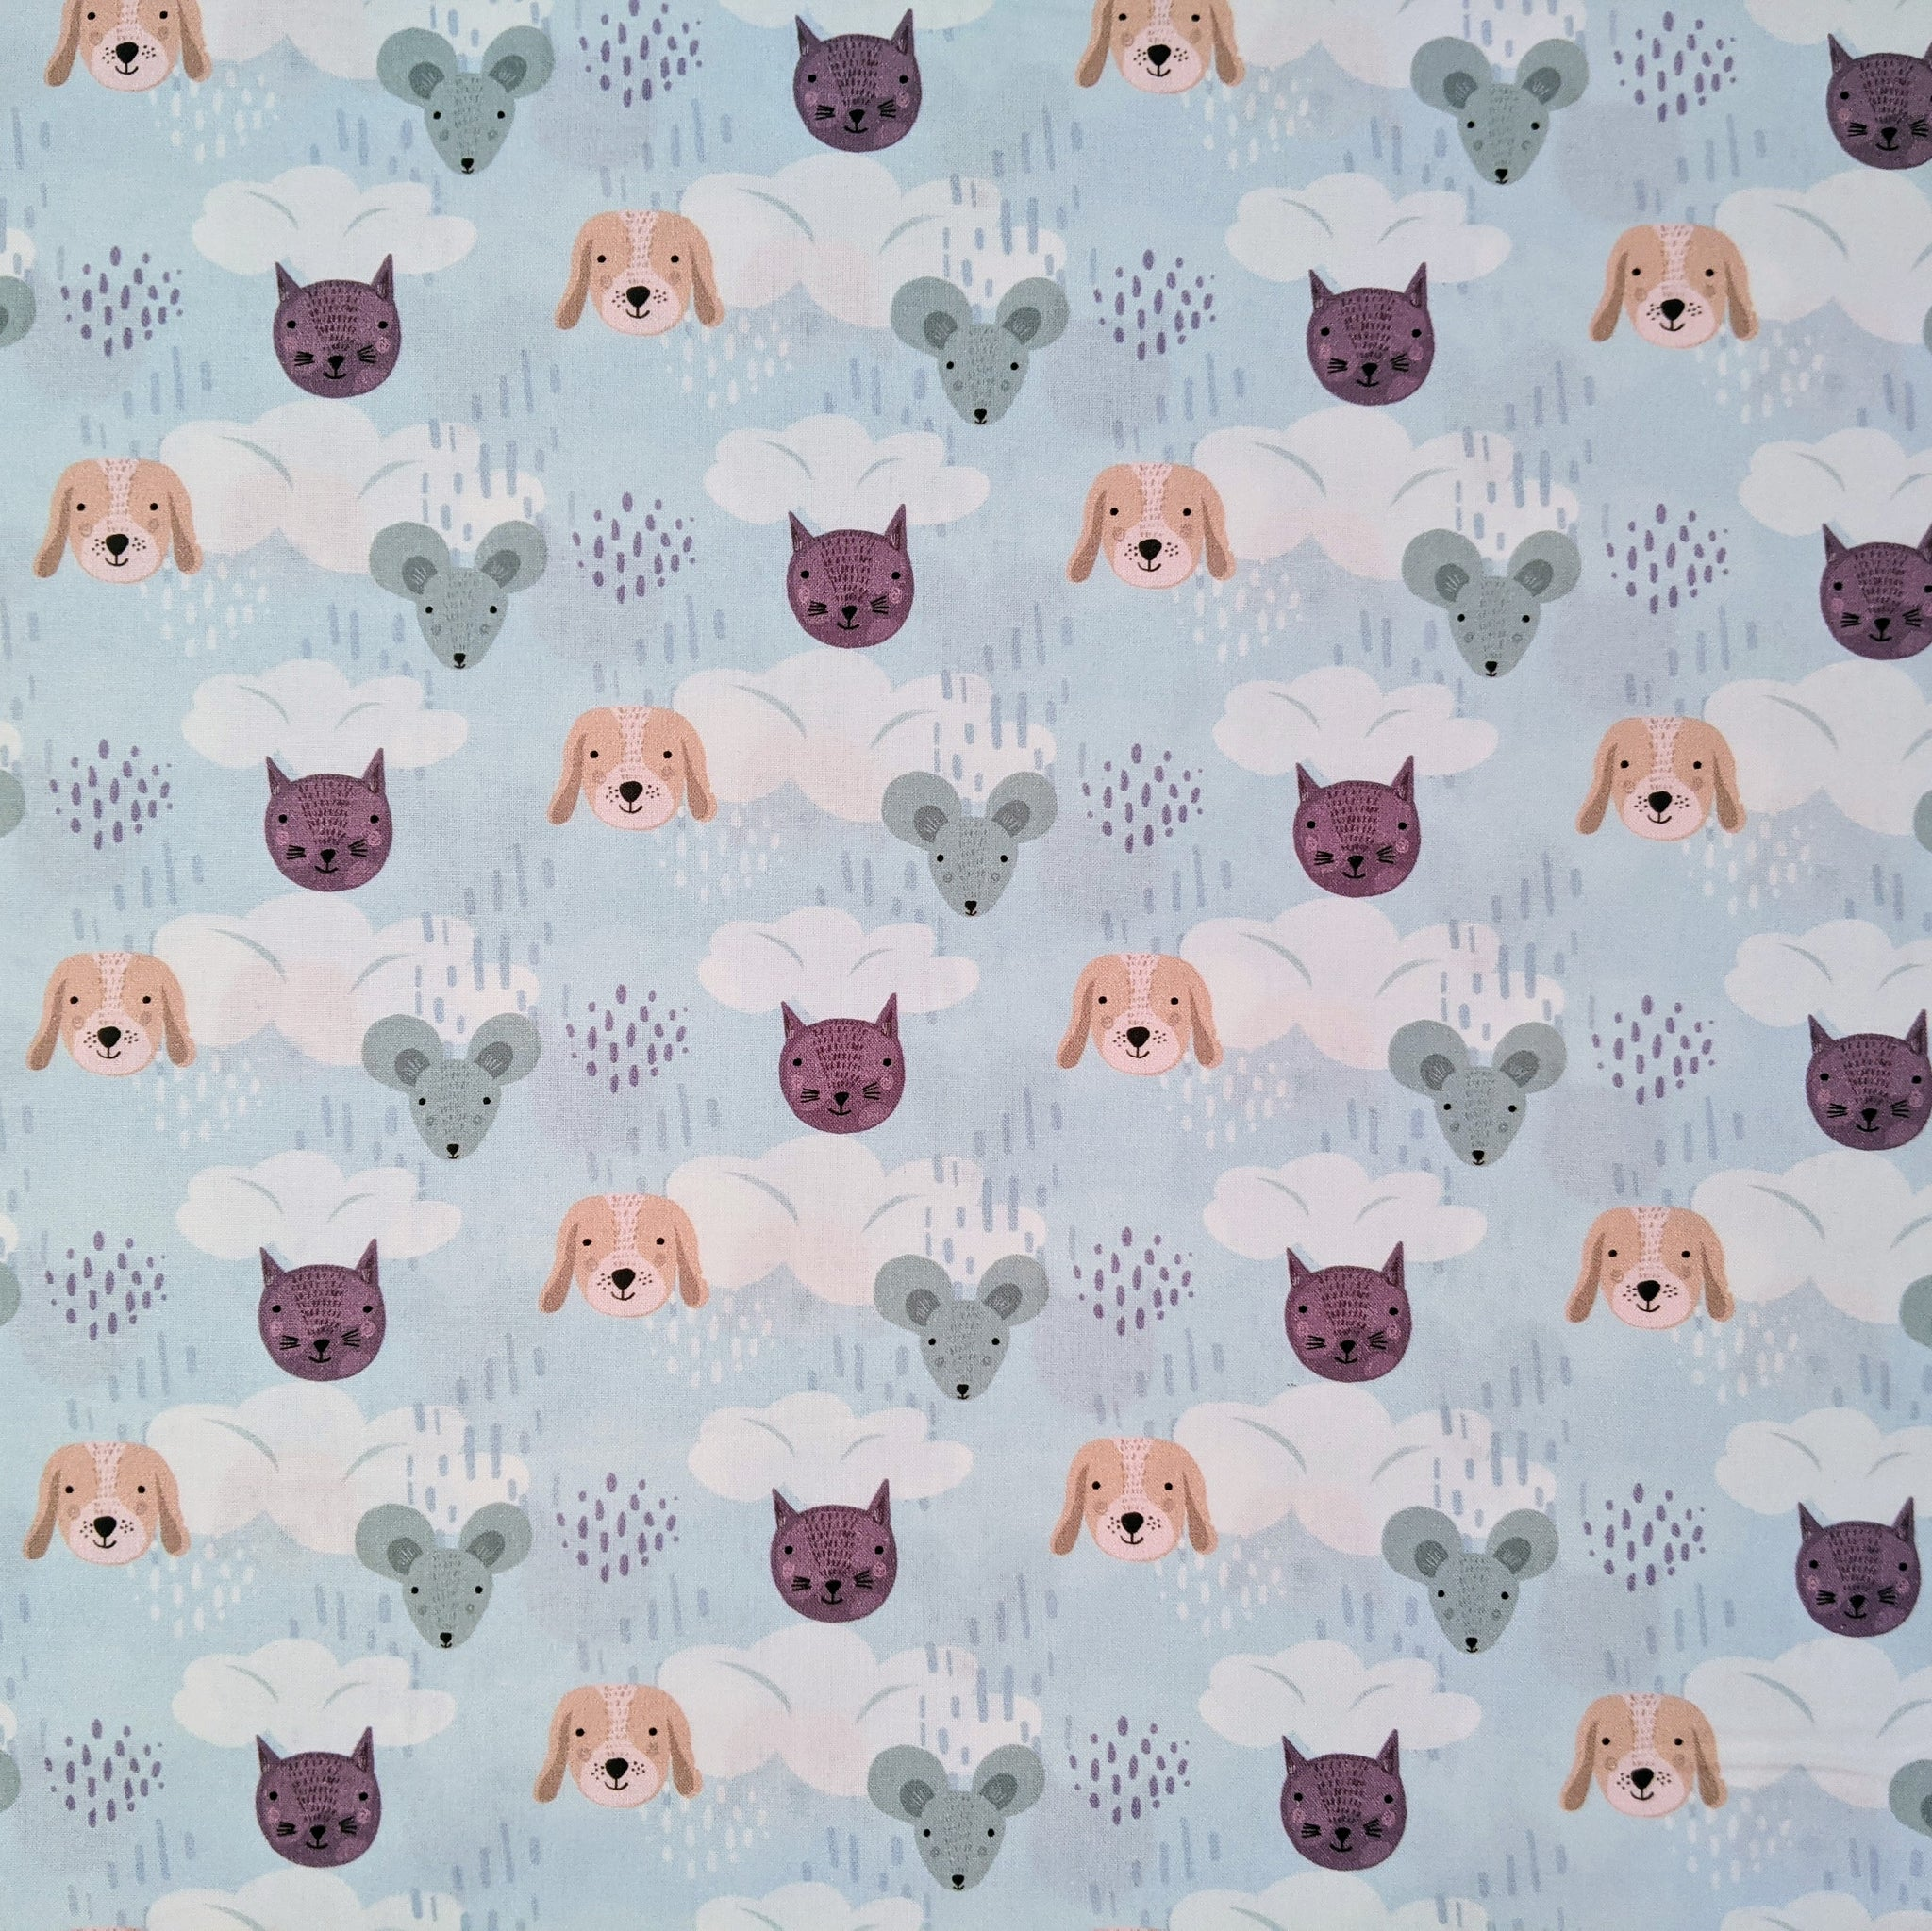 Dogs, cats and mice - 100% cotton - Animals Delight collection - Craft Cotton co